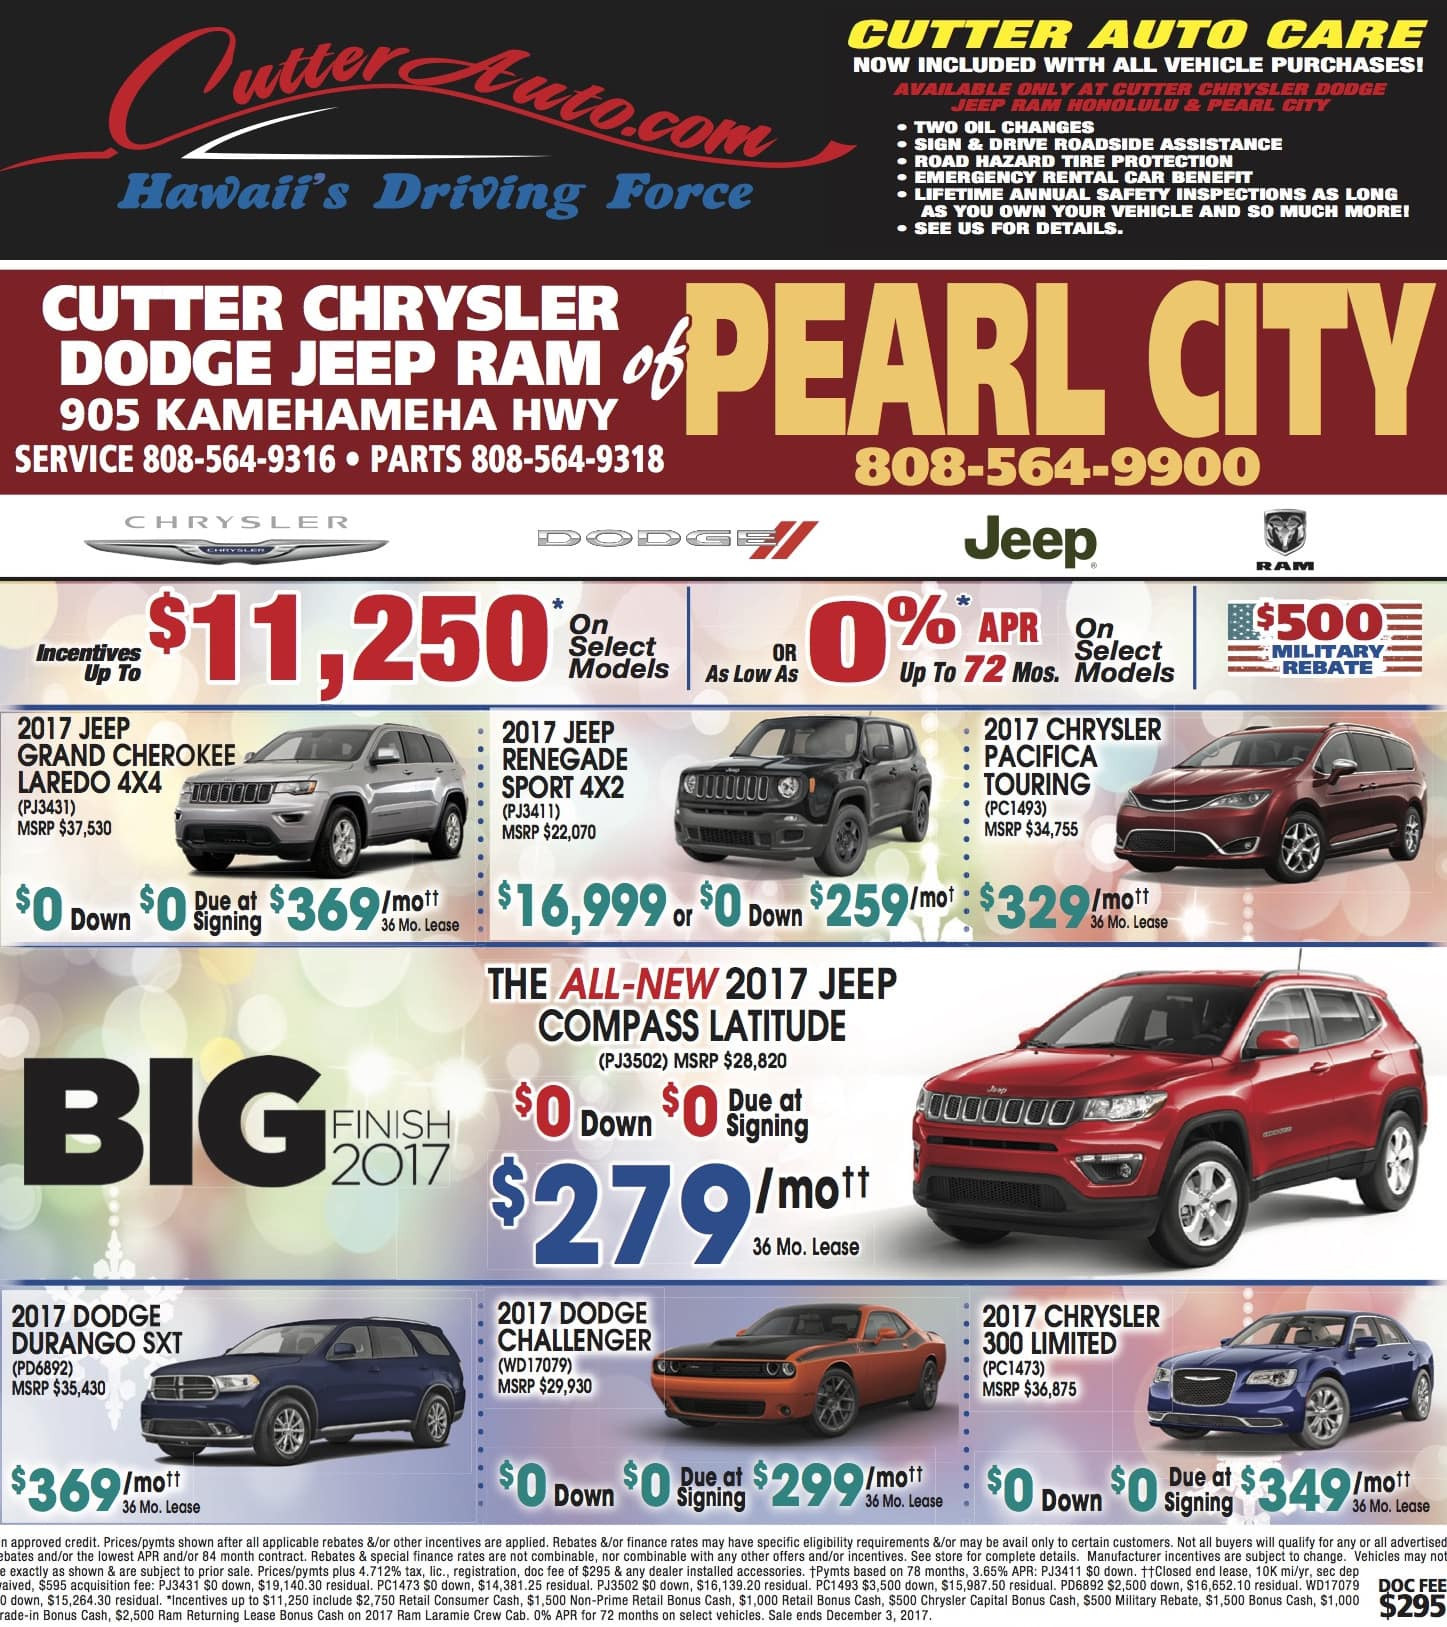 jeep dealership oahu unique inventory cutter chrysler jeep dodge pearl city